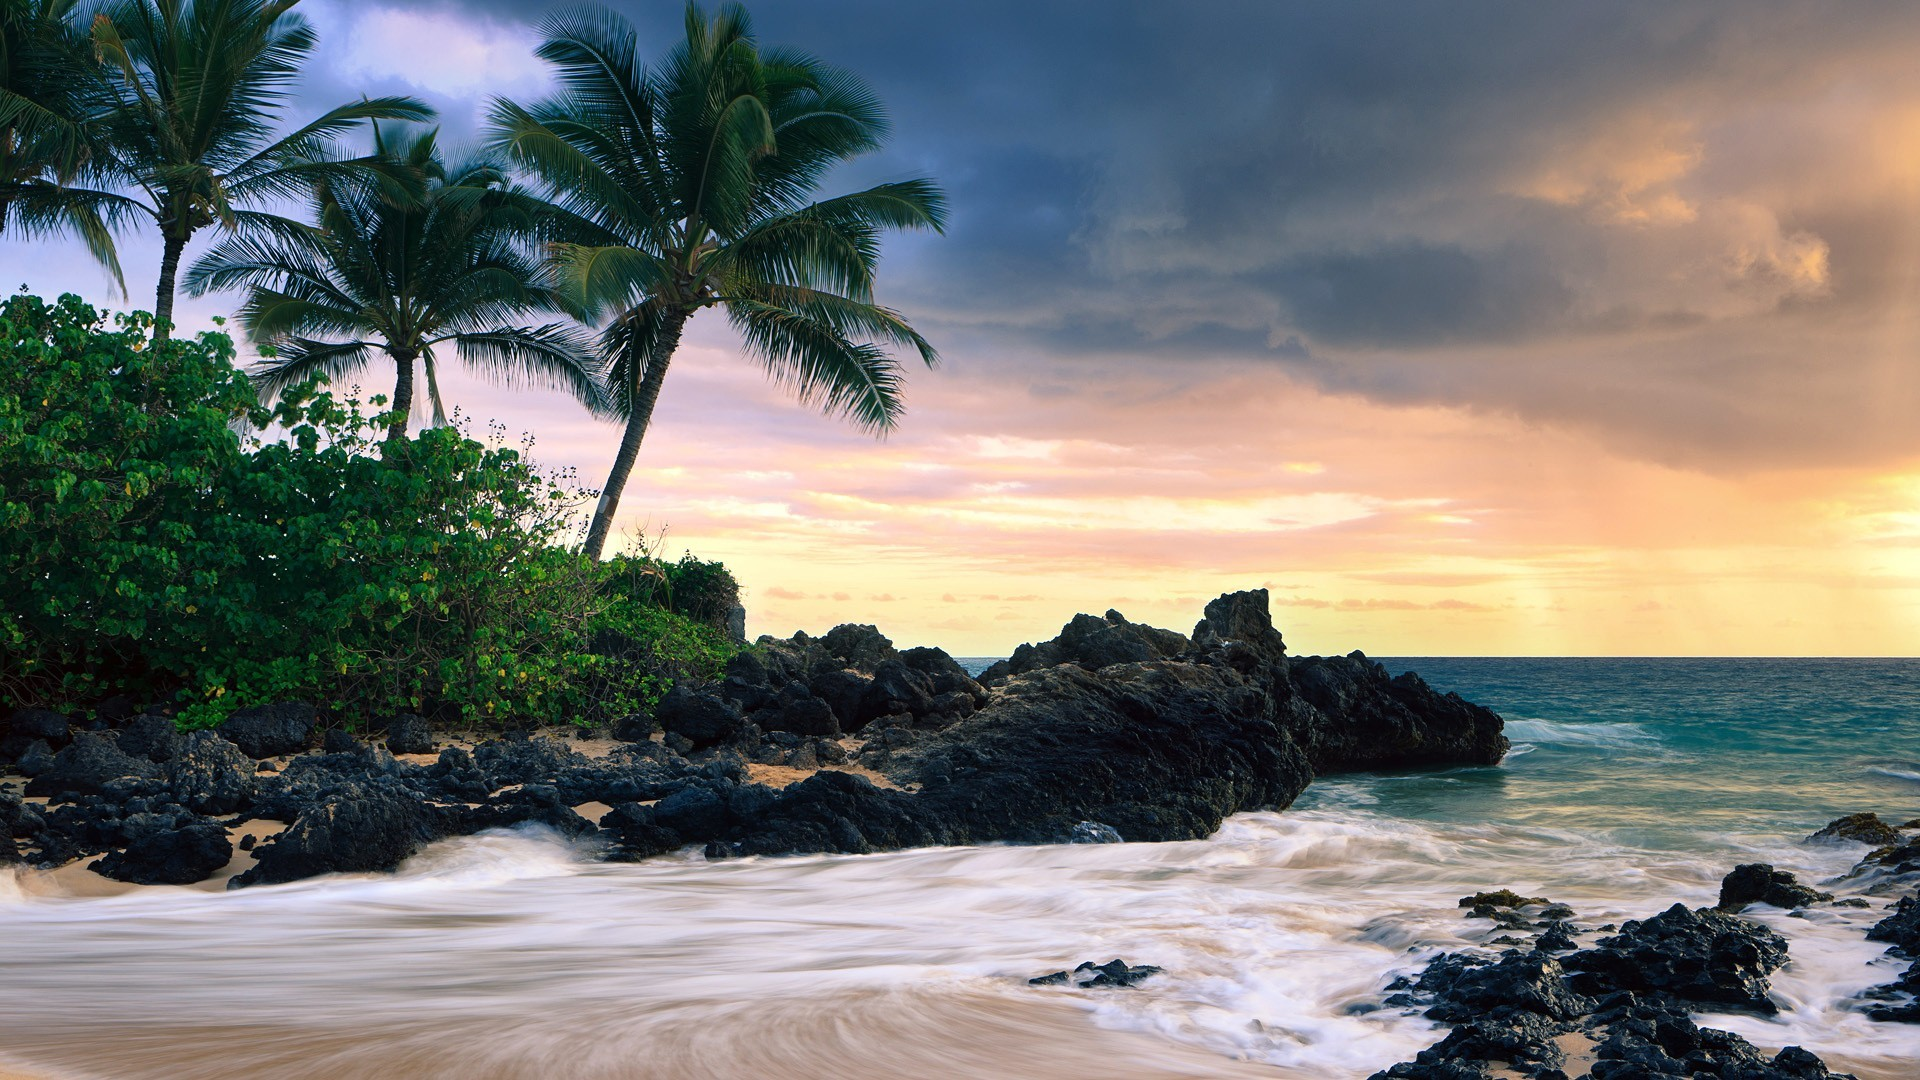 1920x1080 ... x 1080 Original. Description: Download Hawaii Secret Beache Beach  wallpaper ...